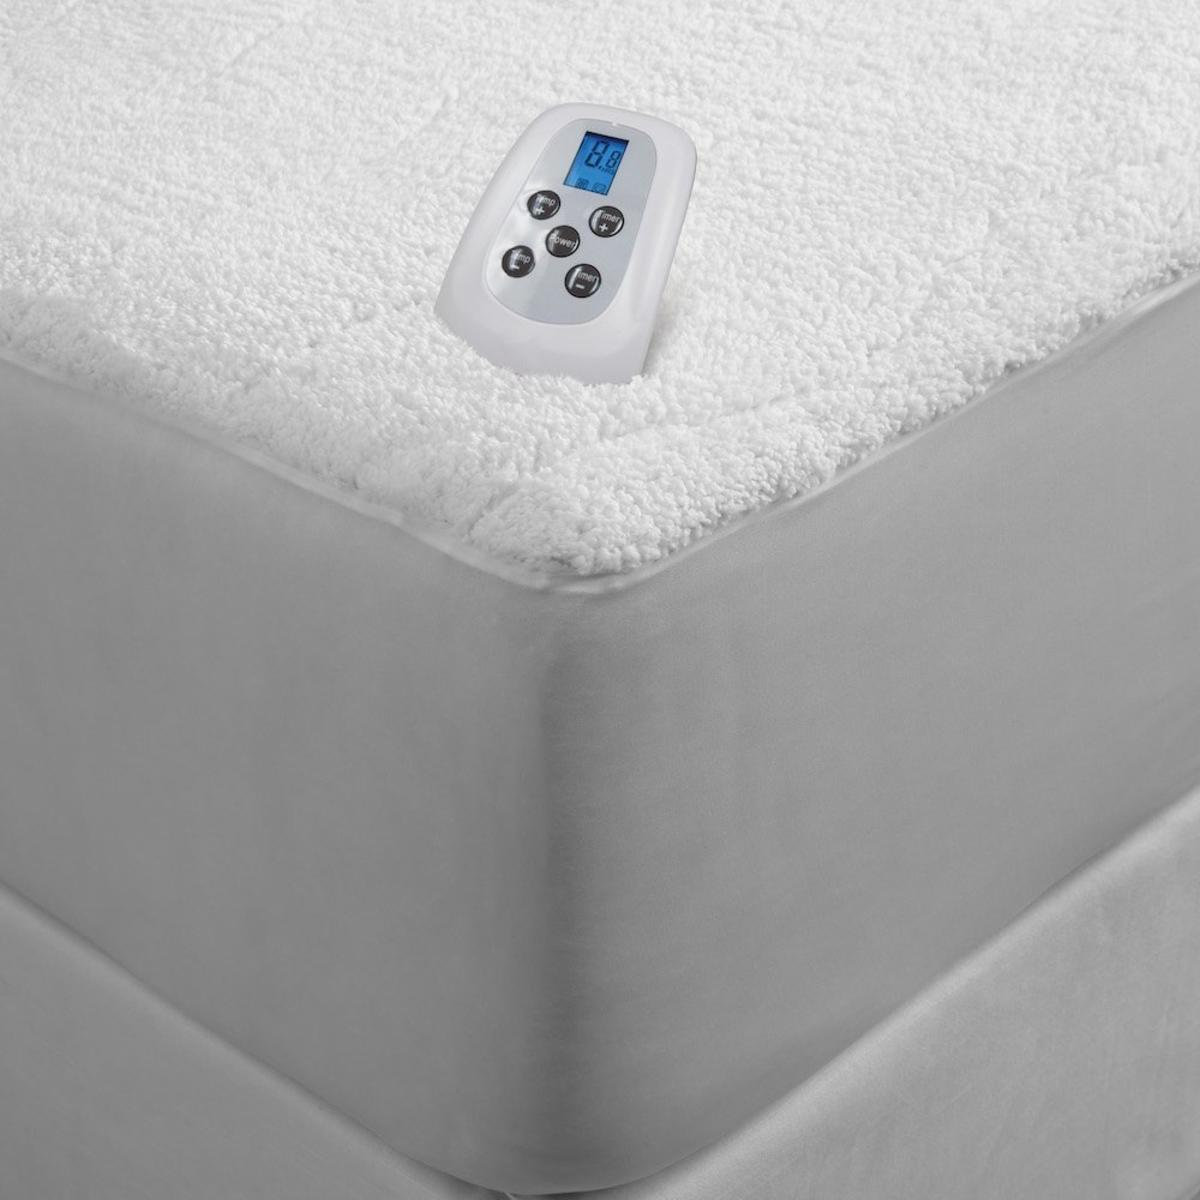 serta sherpa plush 110v electric heated mattress pad with